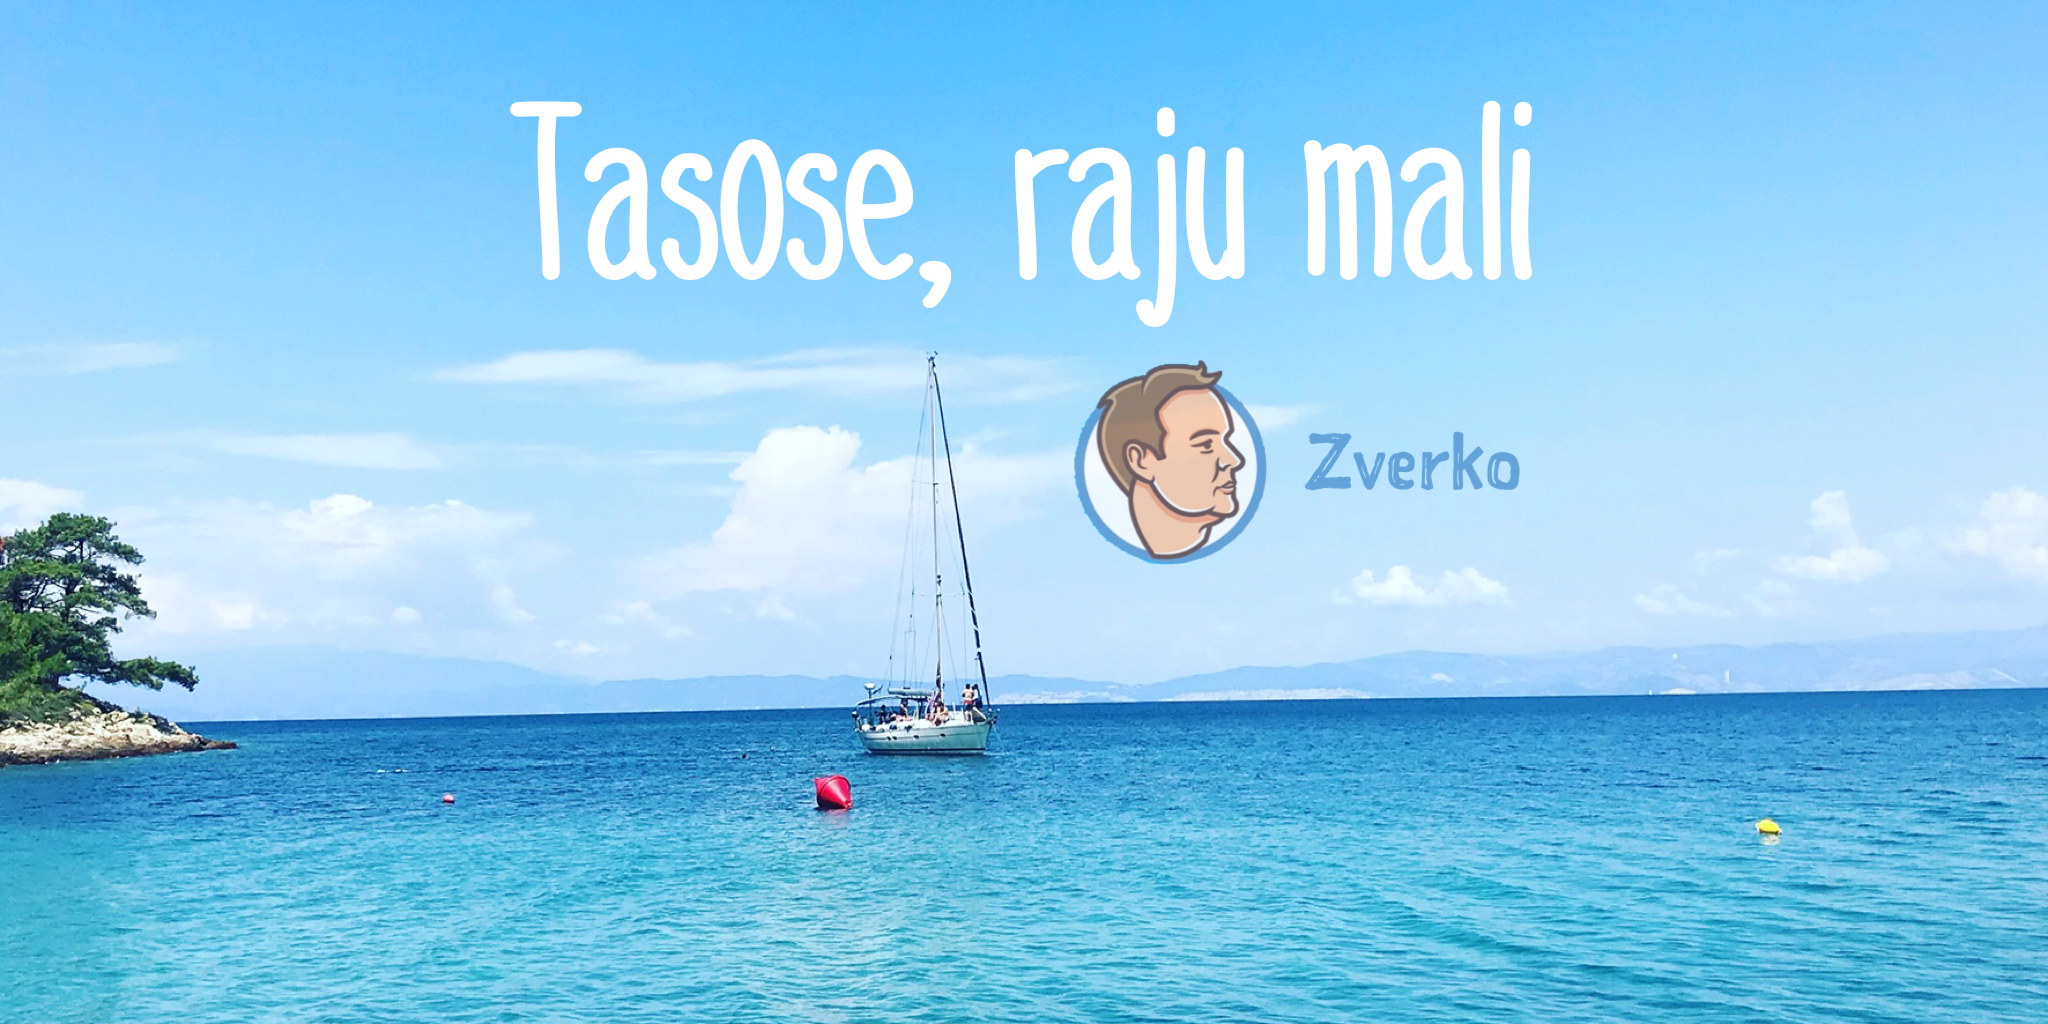 Tasos Mali Raj Zverkors Marketing Biznis